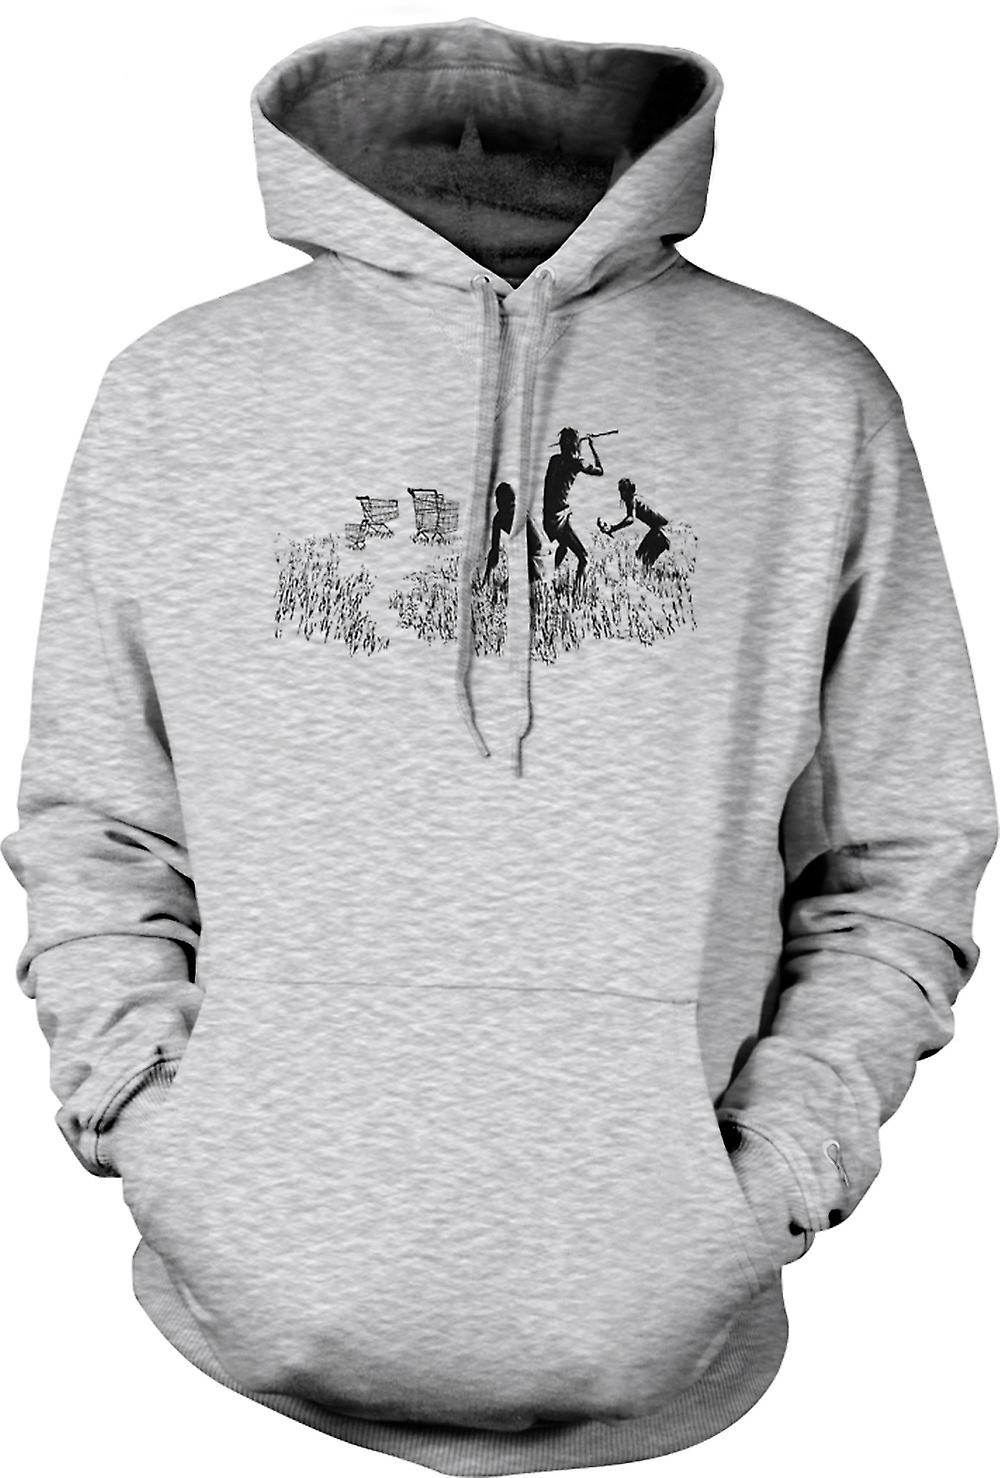 Mens Hoodie - Banksy Graffiti Art - Hunters